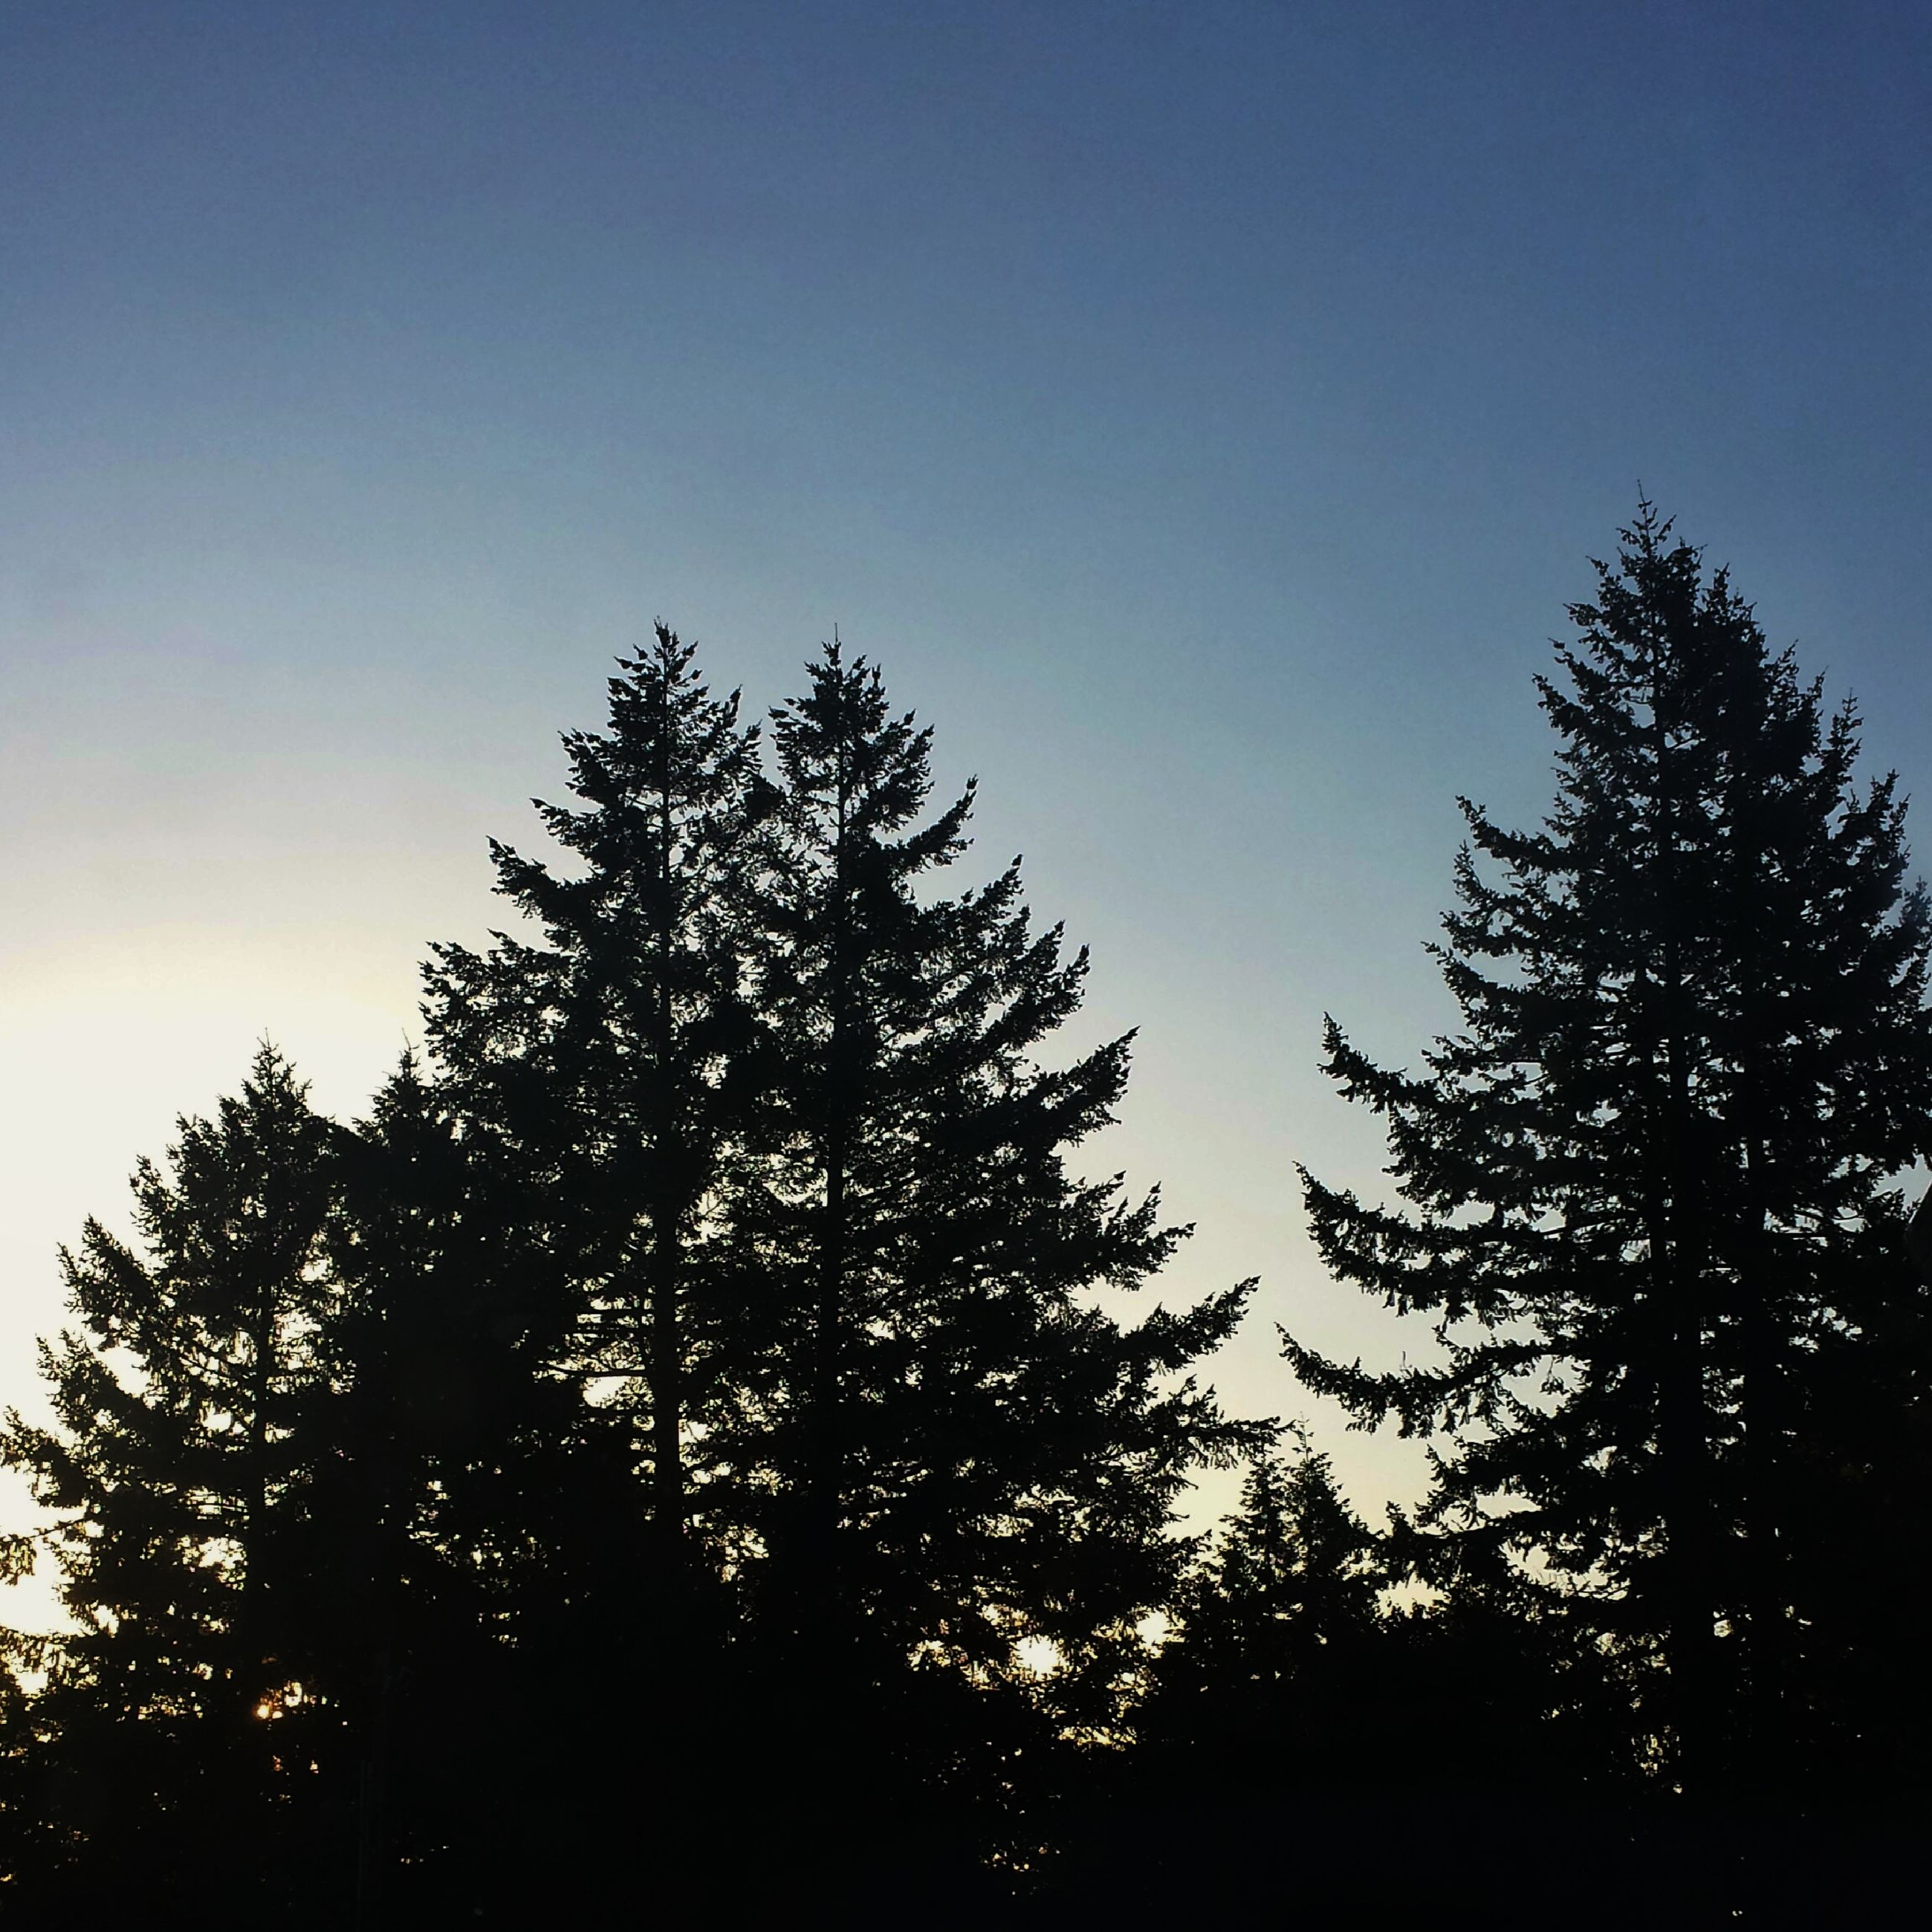 tree, low angle view, silhouette, clear sky, growth, beauty in nature, blue, tranquility, nature, branch, sky, scenics, tranquil scene, copy space, high section, treetop, outdoors, no people, dusk, idyllic